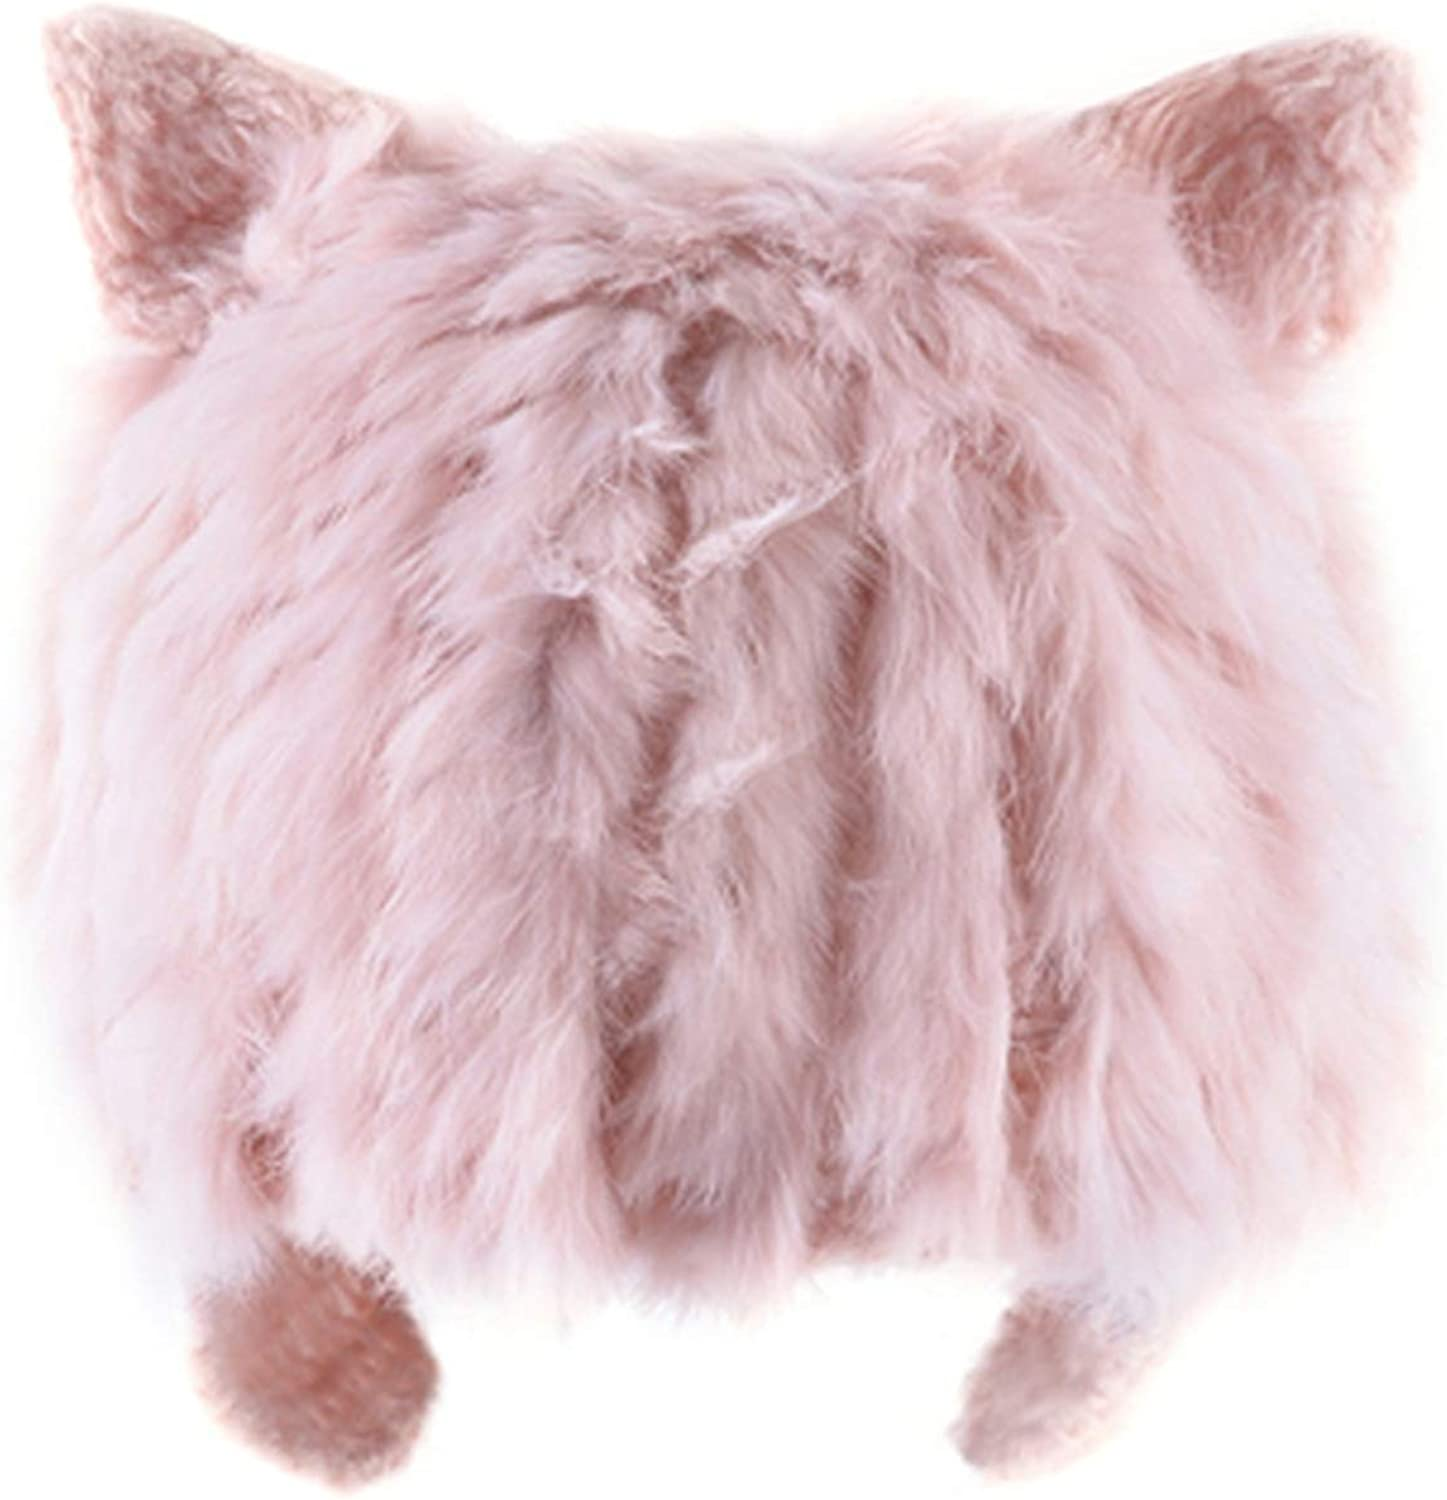 Rabbit Fur Hatss Knitted Wool Beanies Girl Lovely Winter hat cat Ear Flaps Cap